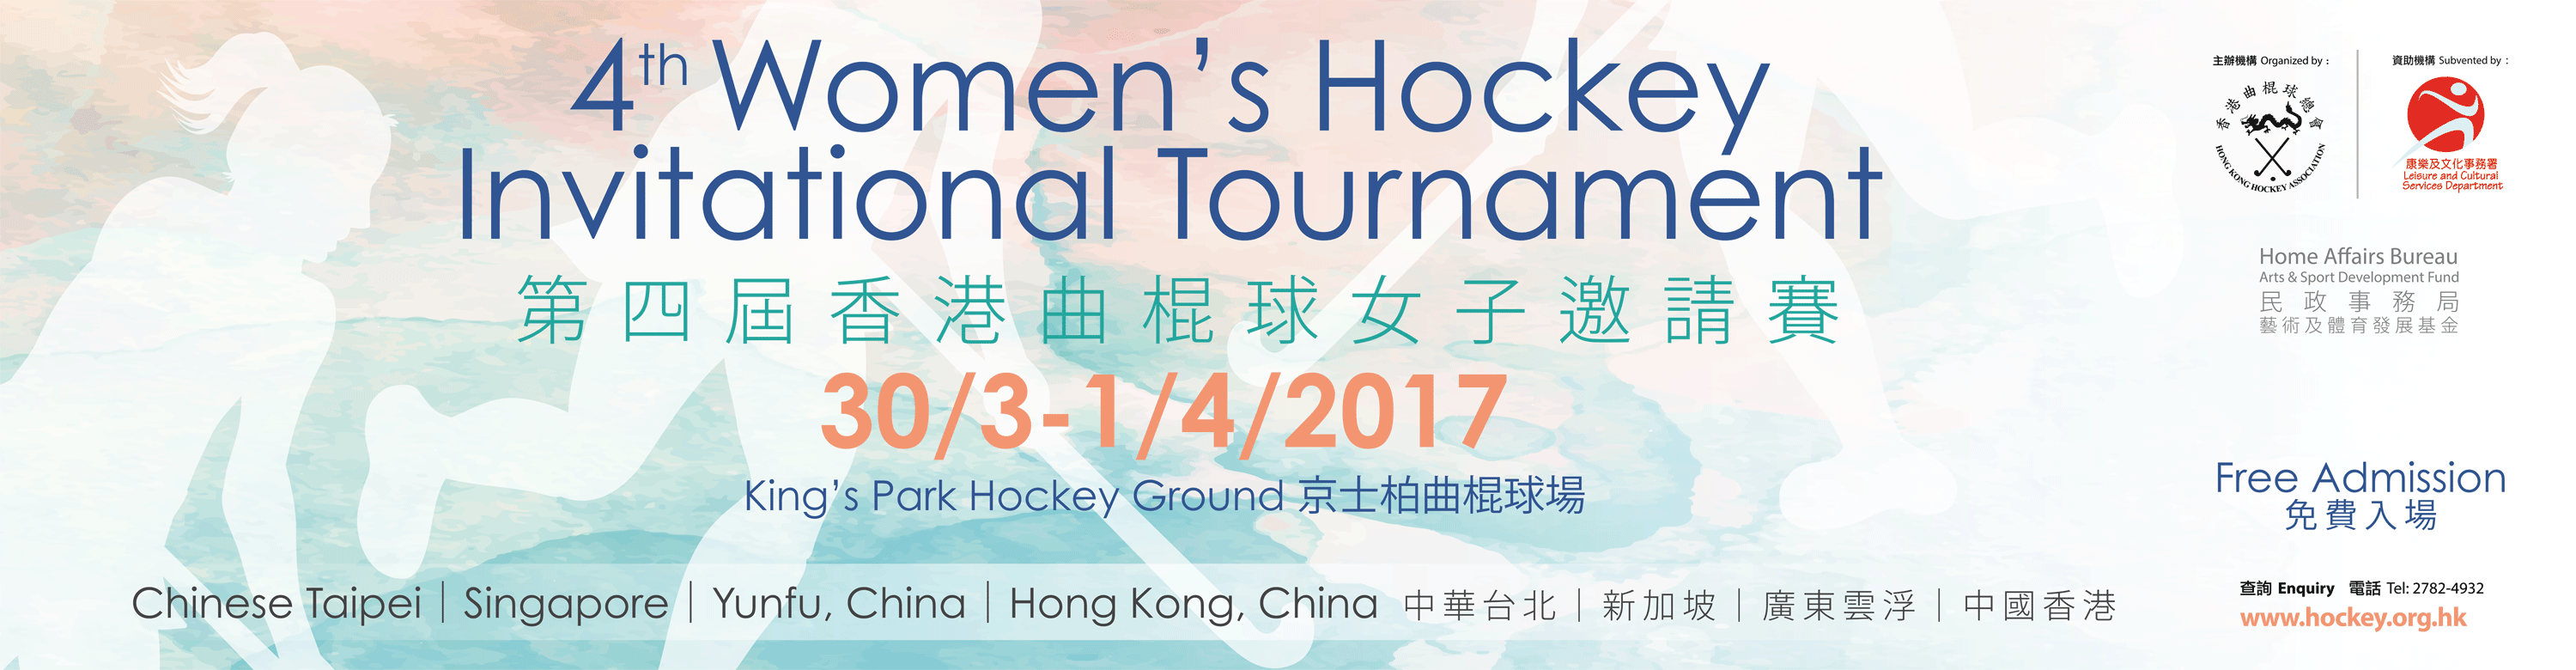 4th Women's Invitational Tournament